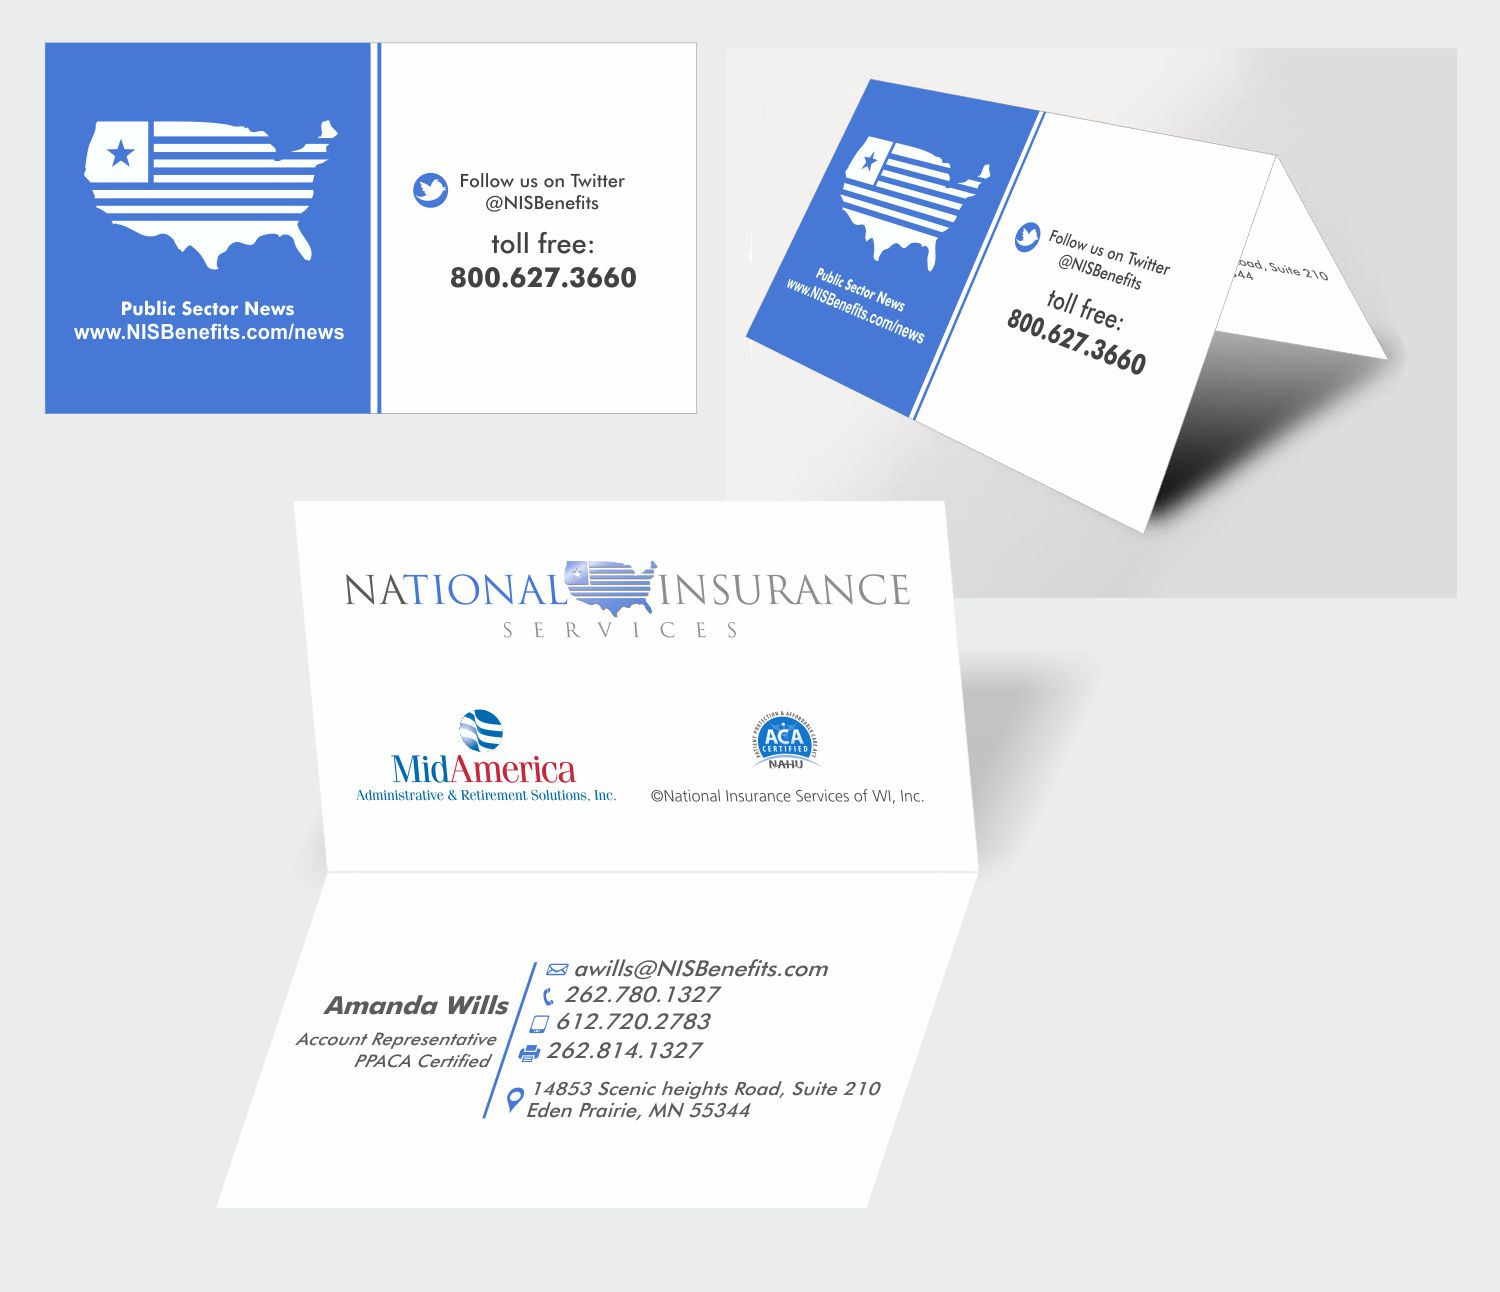 Serious professional insurance business card design for national business card design by inesero for national insurance services design 13634229 colourmoves